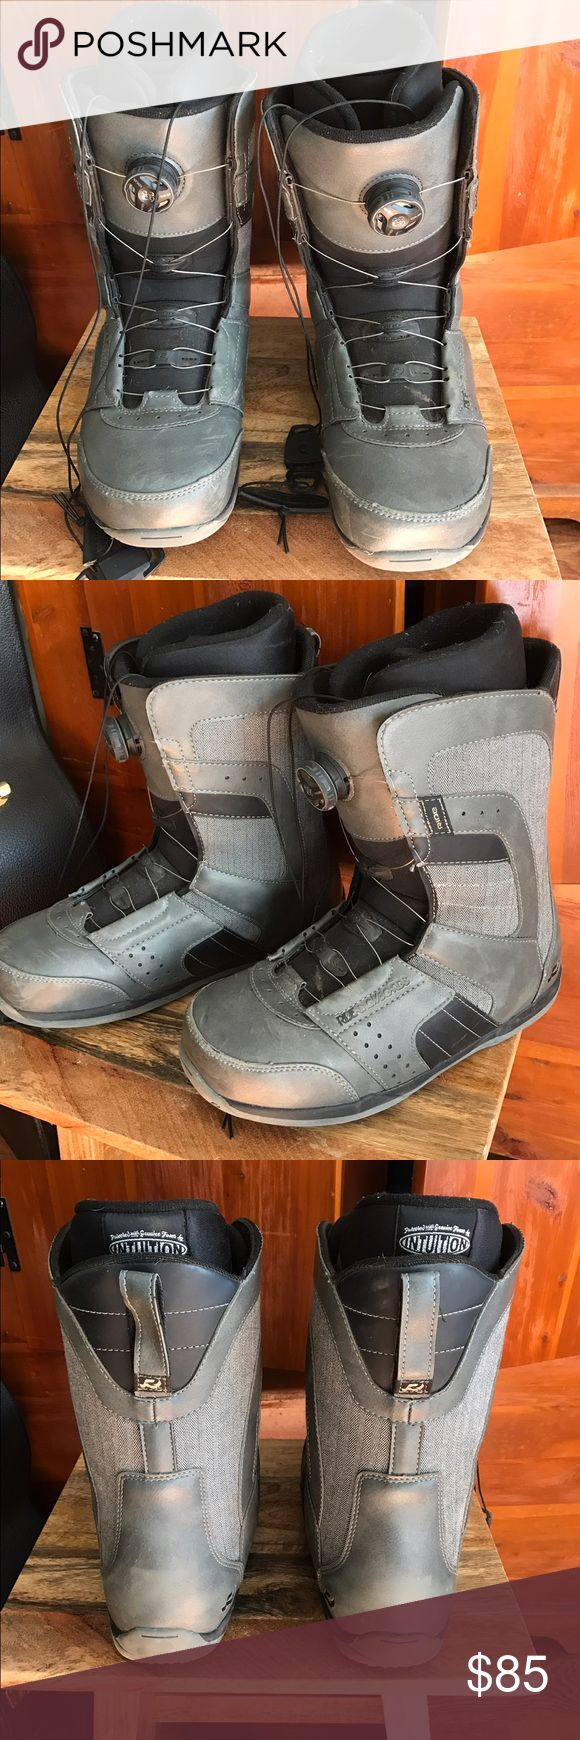 Anthem snowboard boots Anthem snowboard boots in great condition. Men's size 12. anthem Other